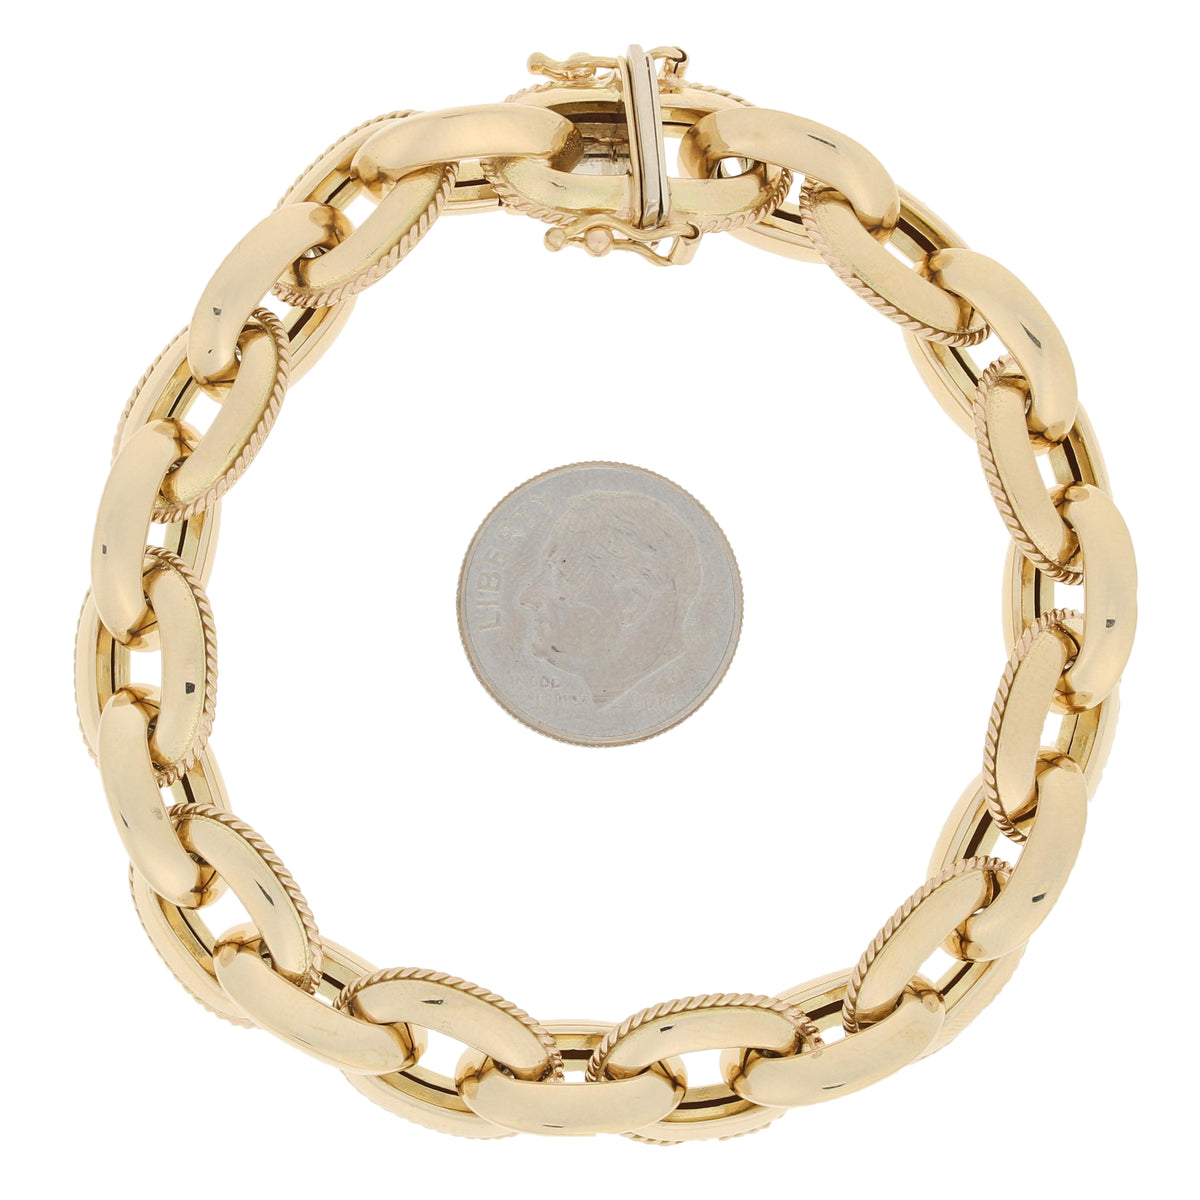 Fancy Cable Chain Bracelet